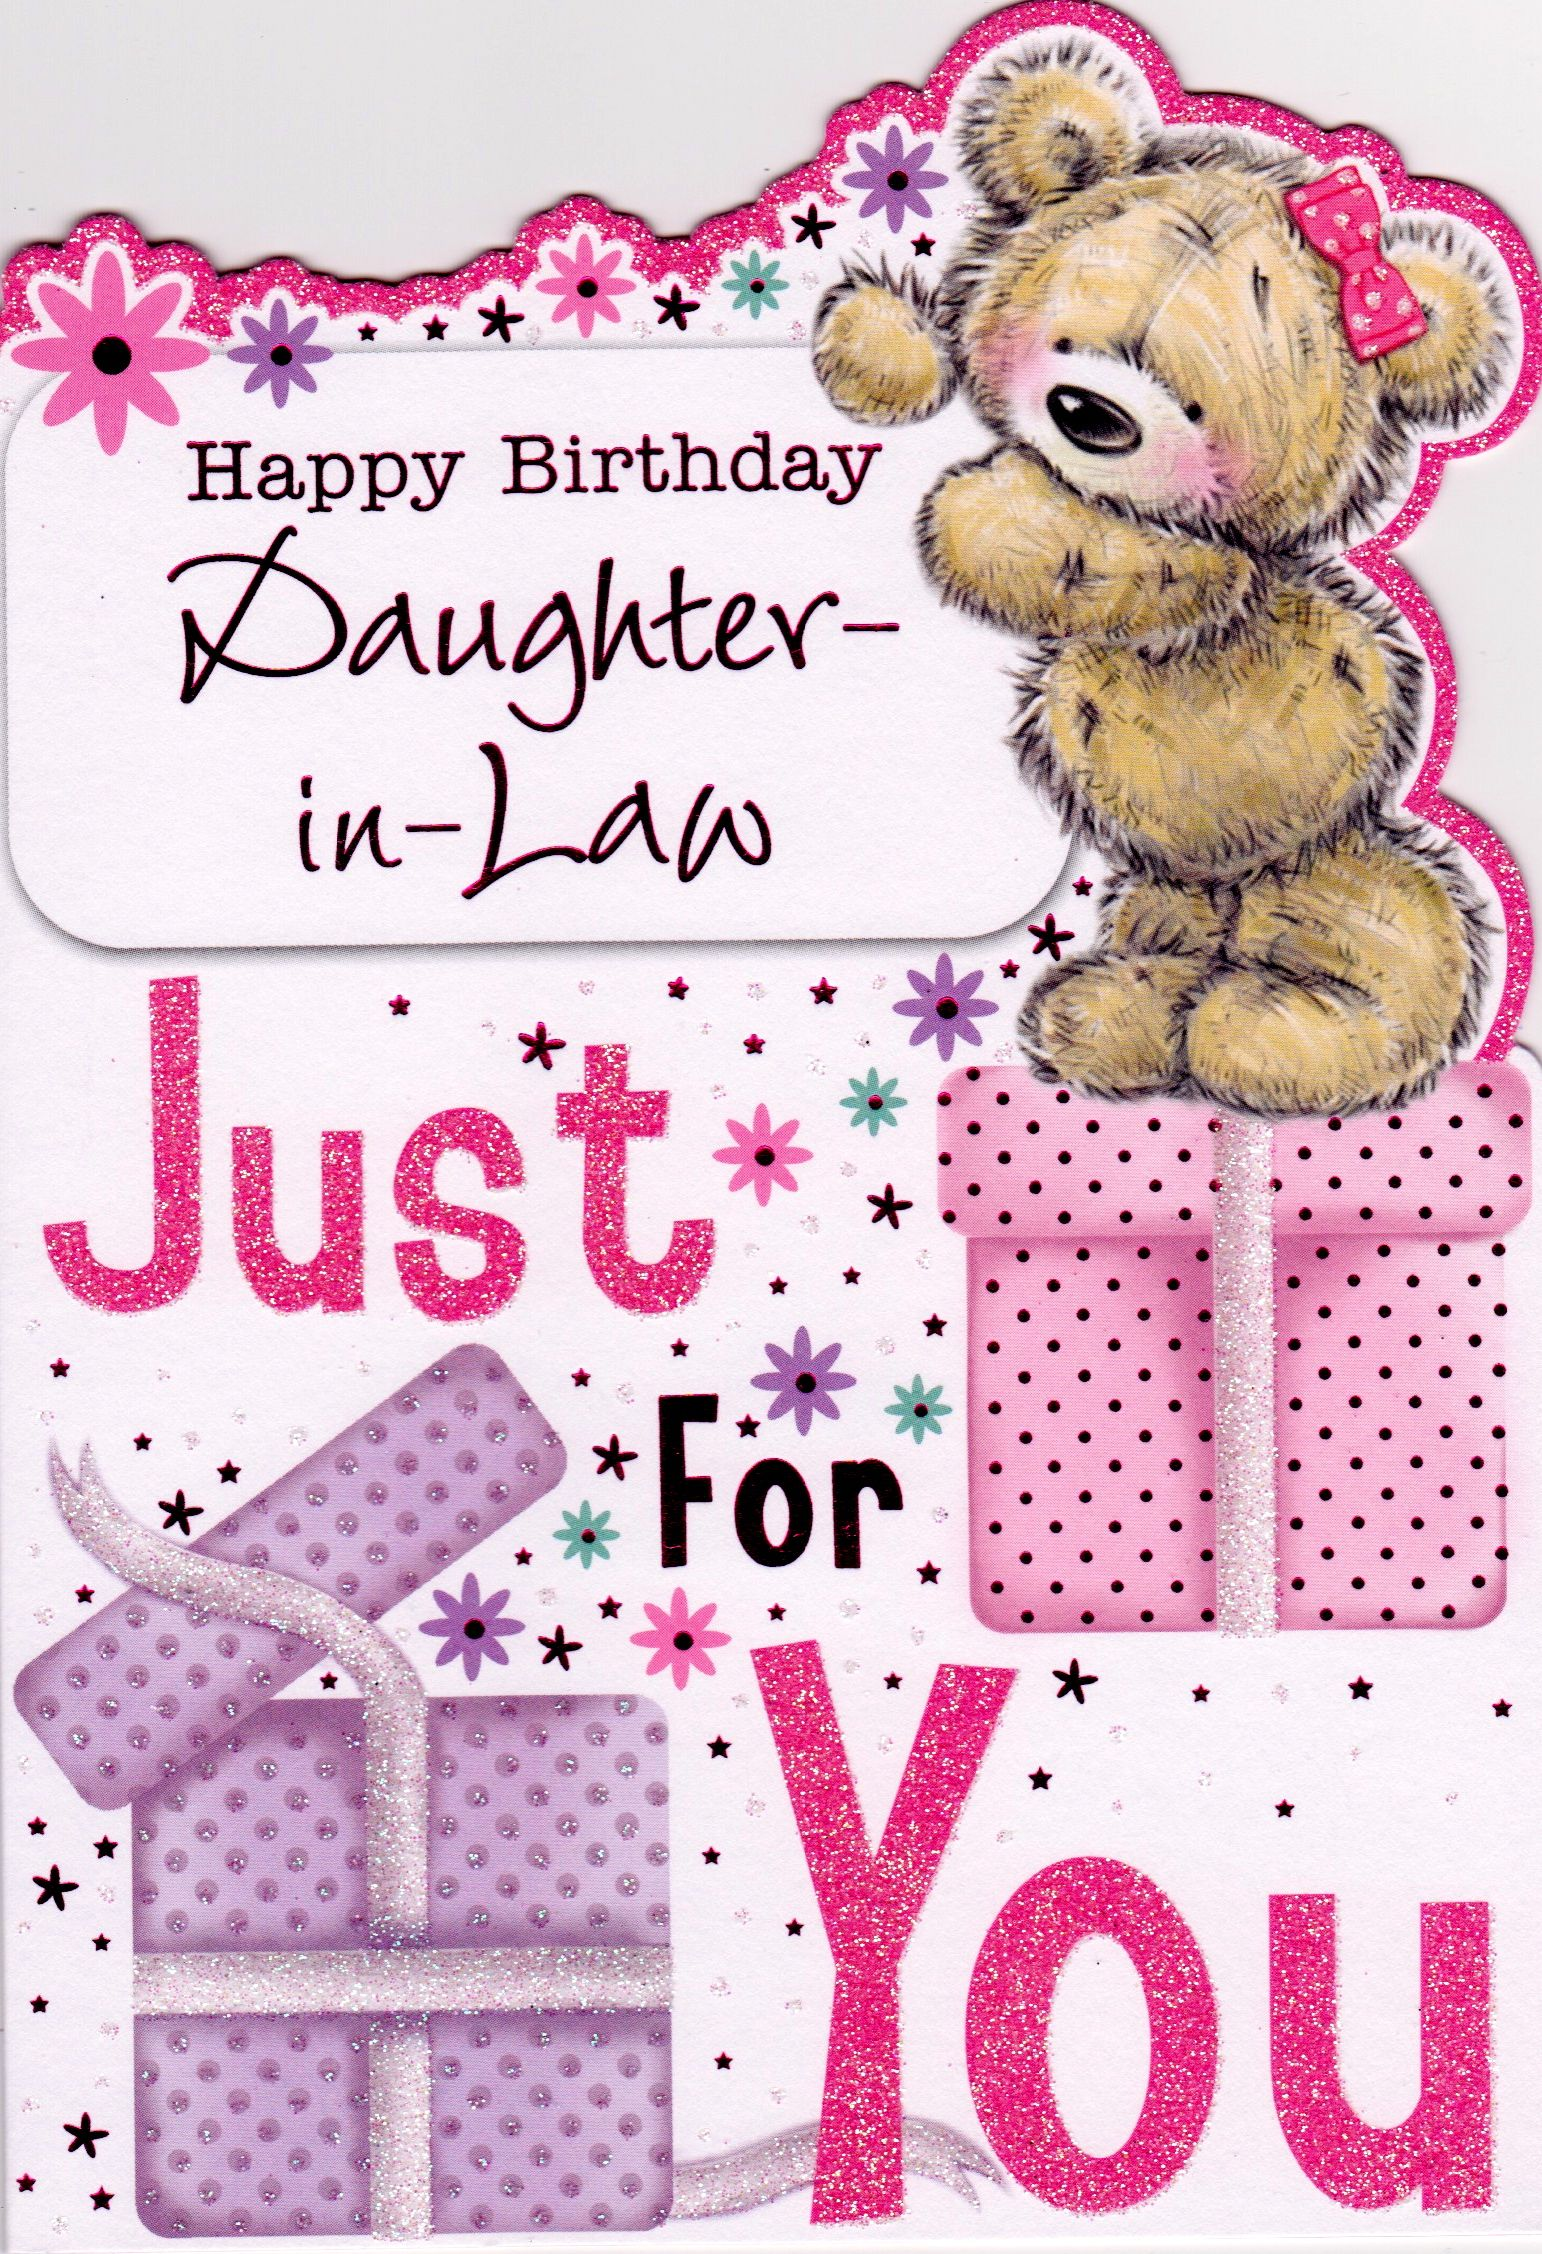 blessings for daughterinlaw Google Search – Happy Birthday Daughter in Law Cards